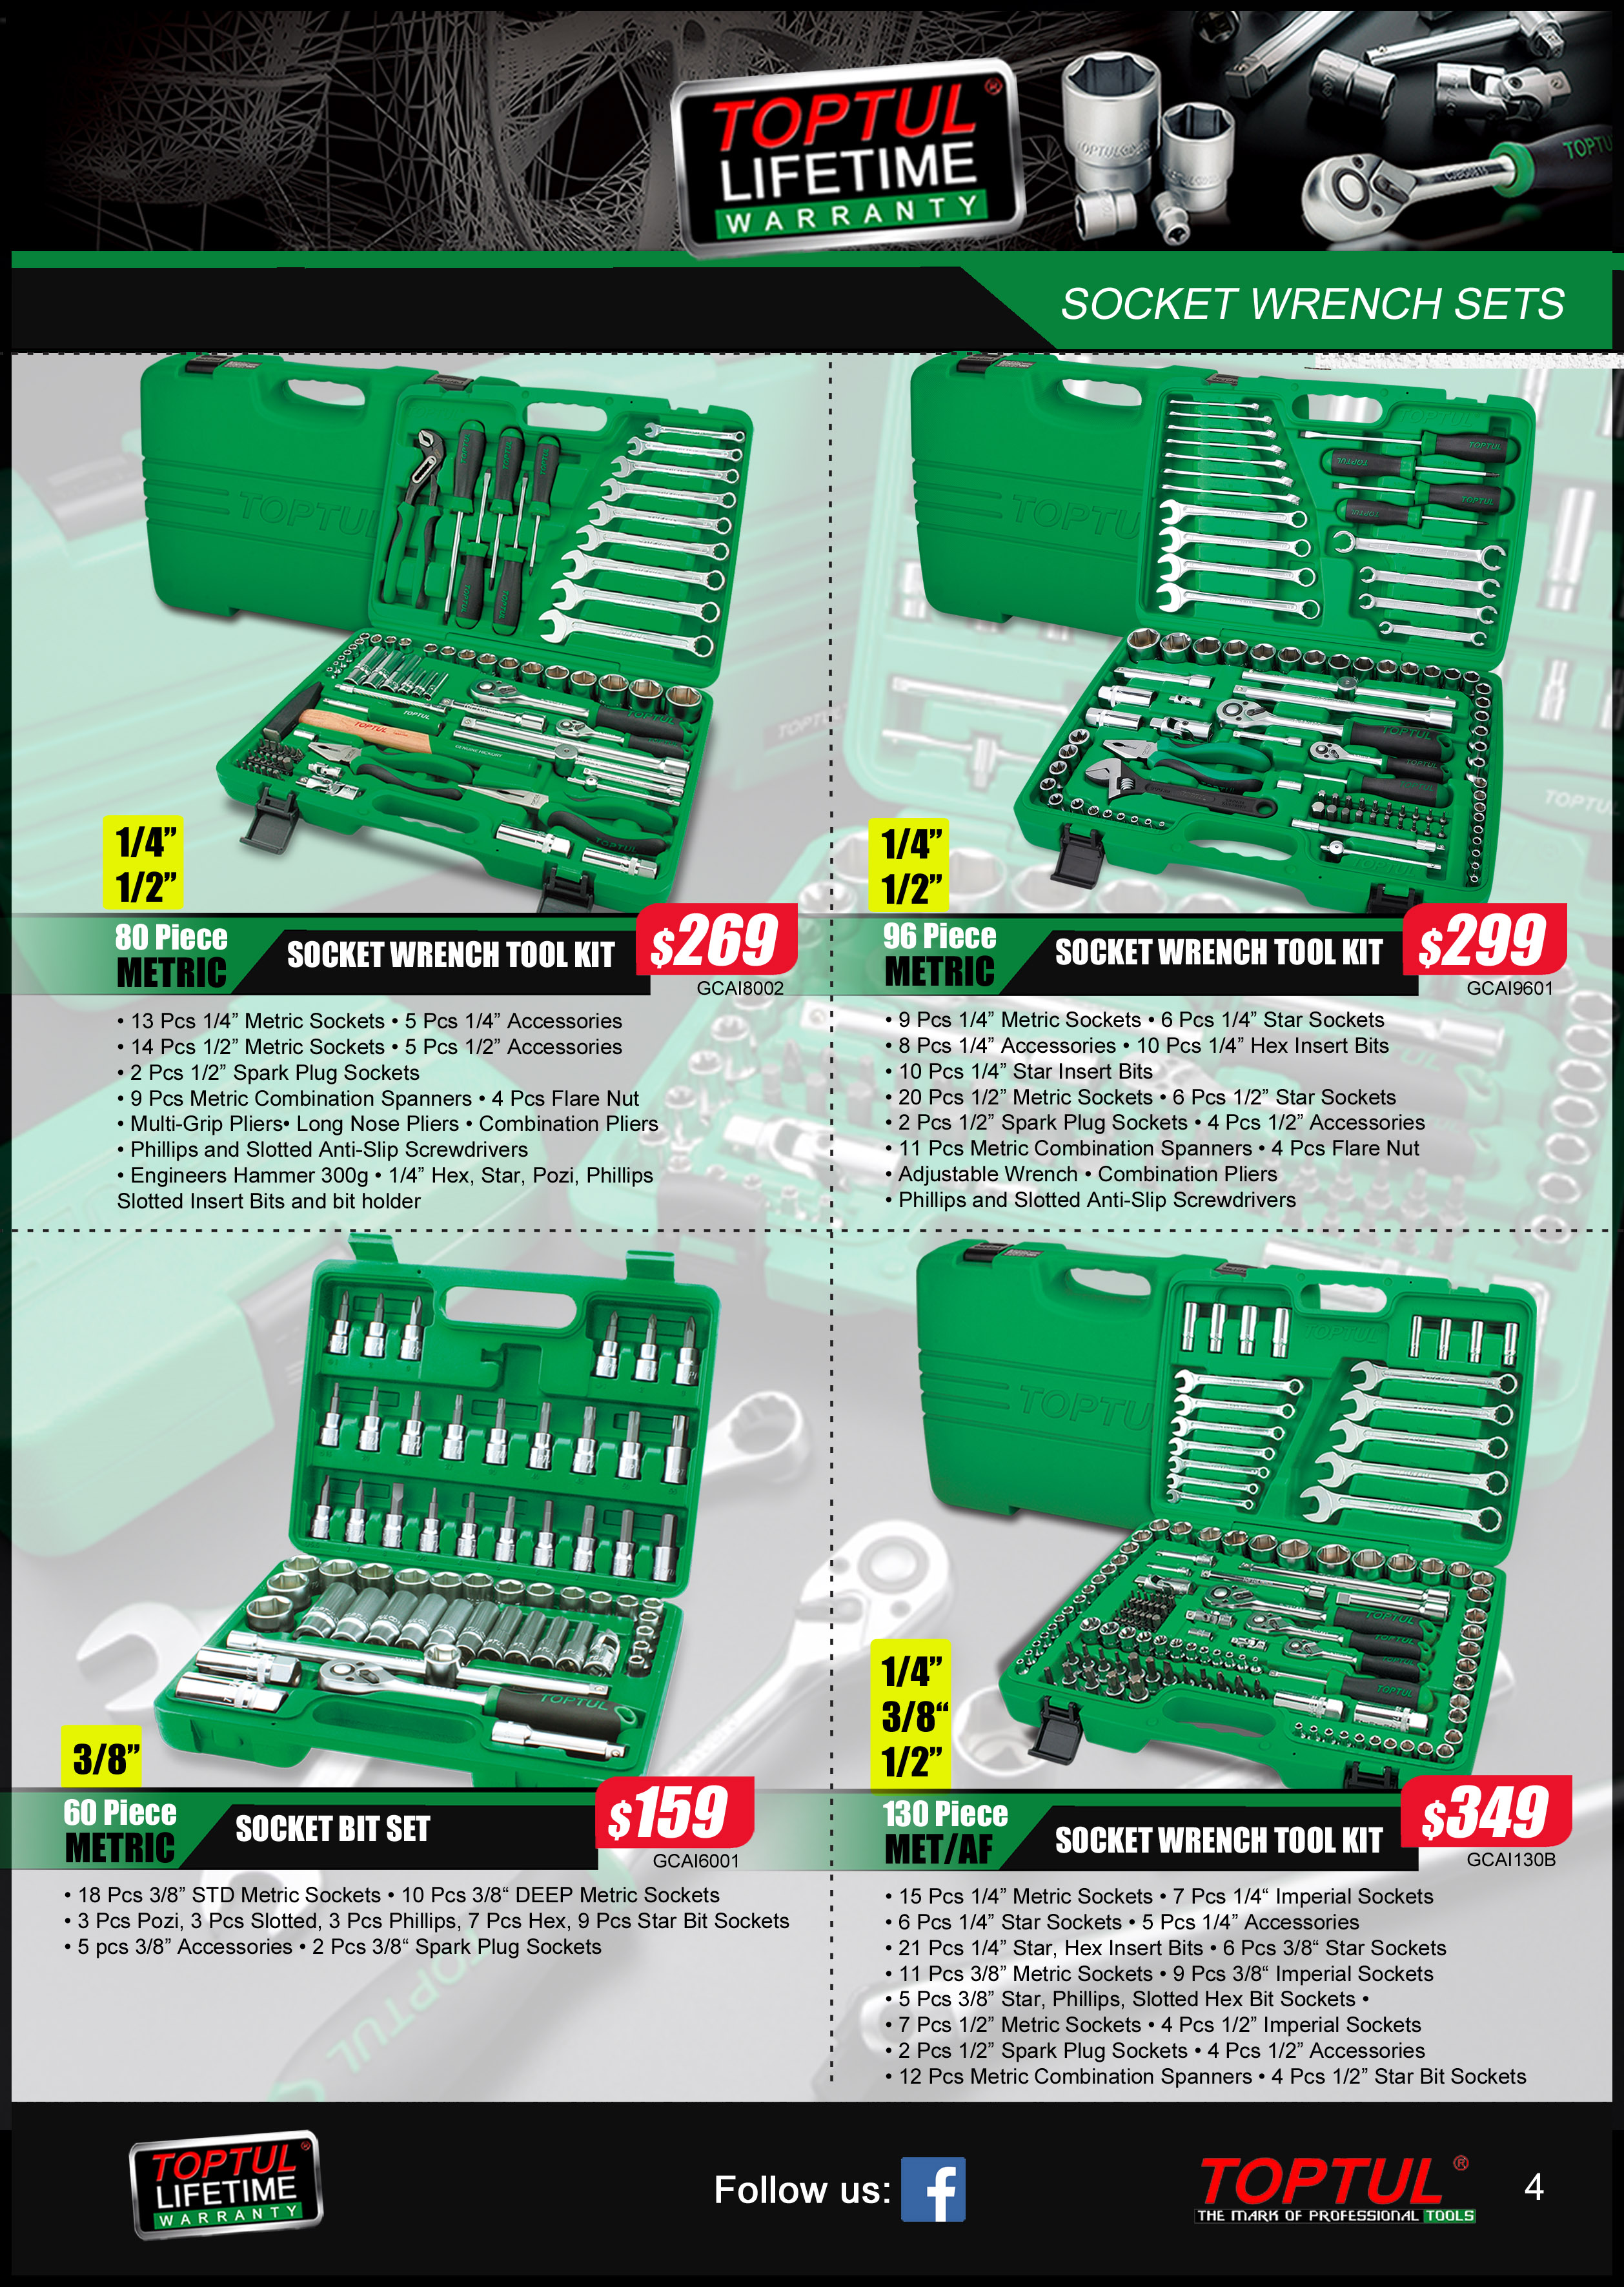 toptul-tax-time-catalogue-page-4-socket-wrench-sets-copy.jpg